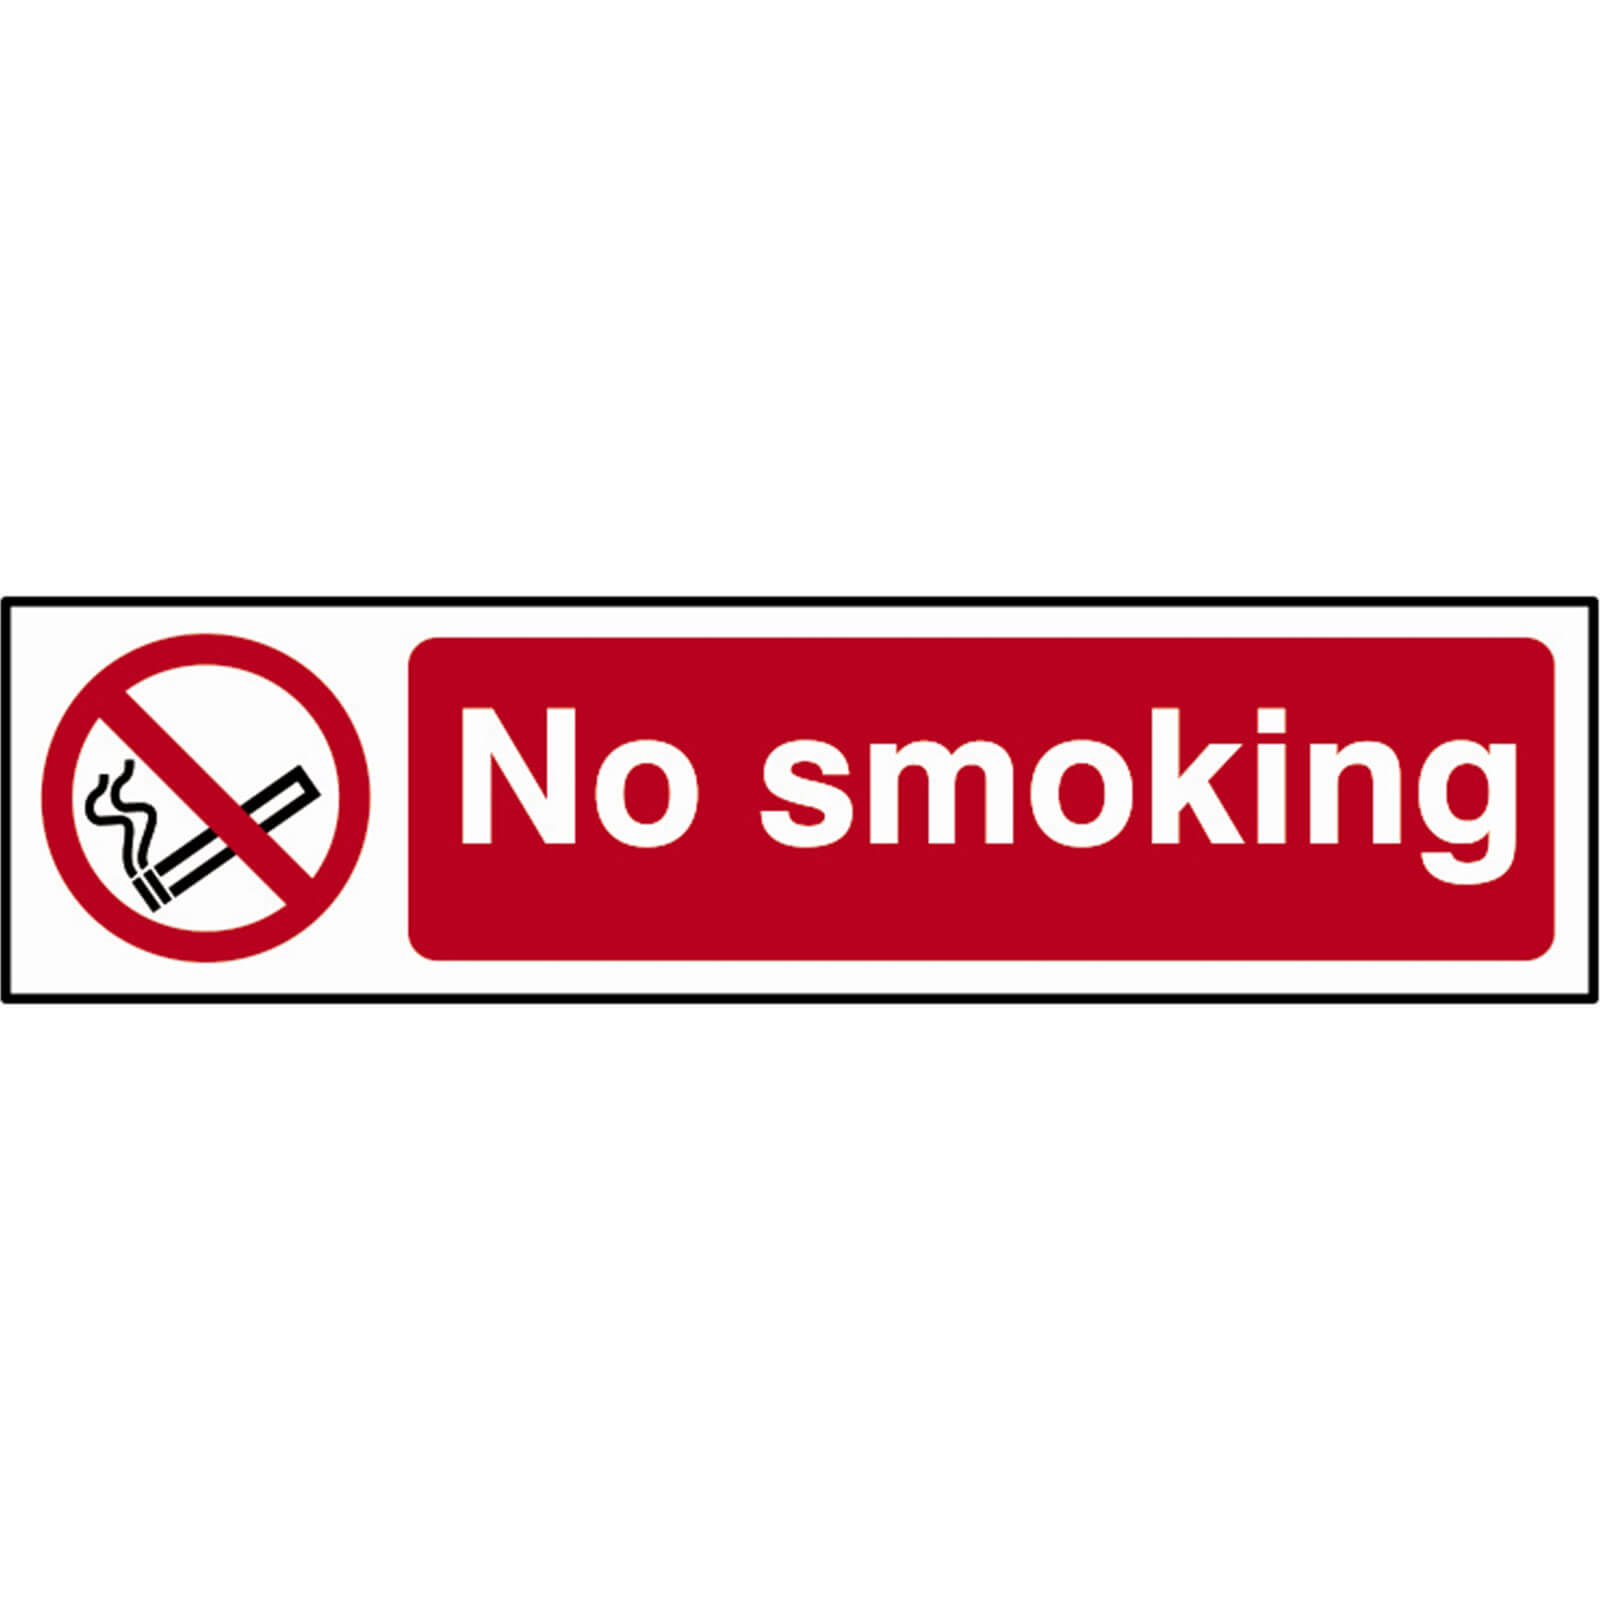 Tooled Up/Safety & Workwear/Safety/Scan 200 x 50mm PVC Sign - No Smoking